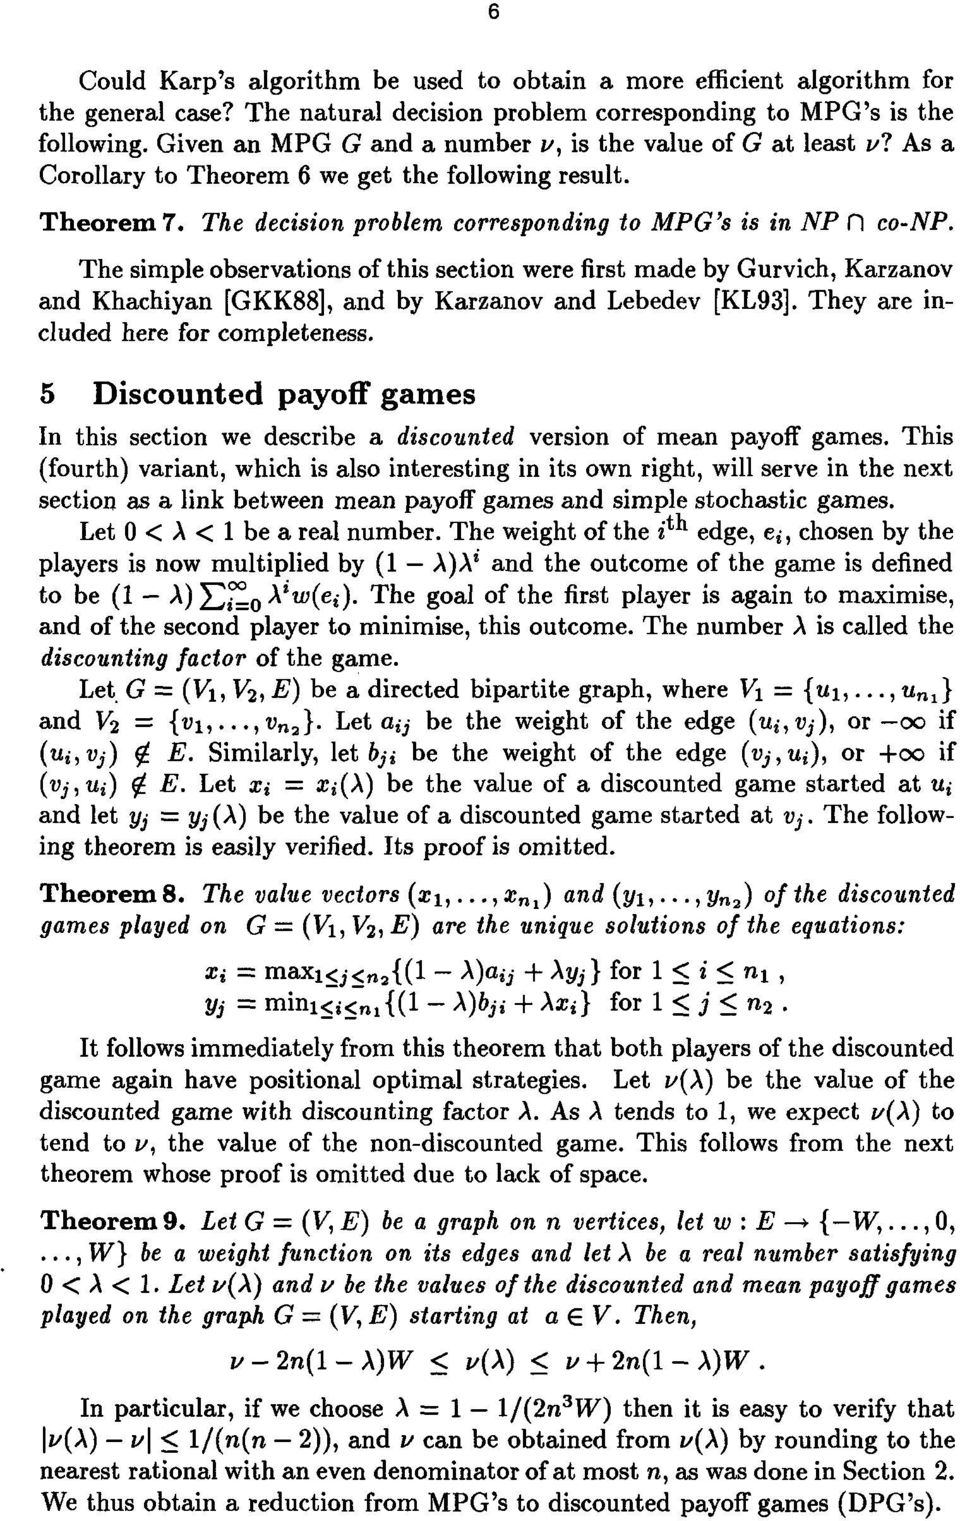 The simple observations of this section were first made by Gurvich, Karzanov and Khachiyan [GKK88], and by Karzanov and Lebedev [KL93]. They are included here for completeness.